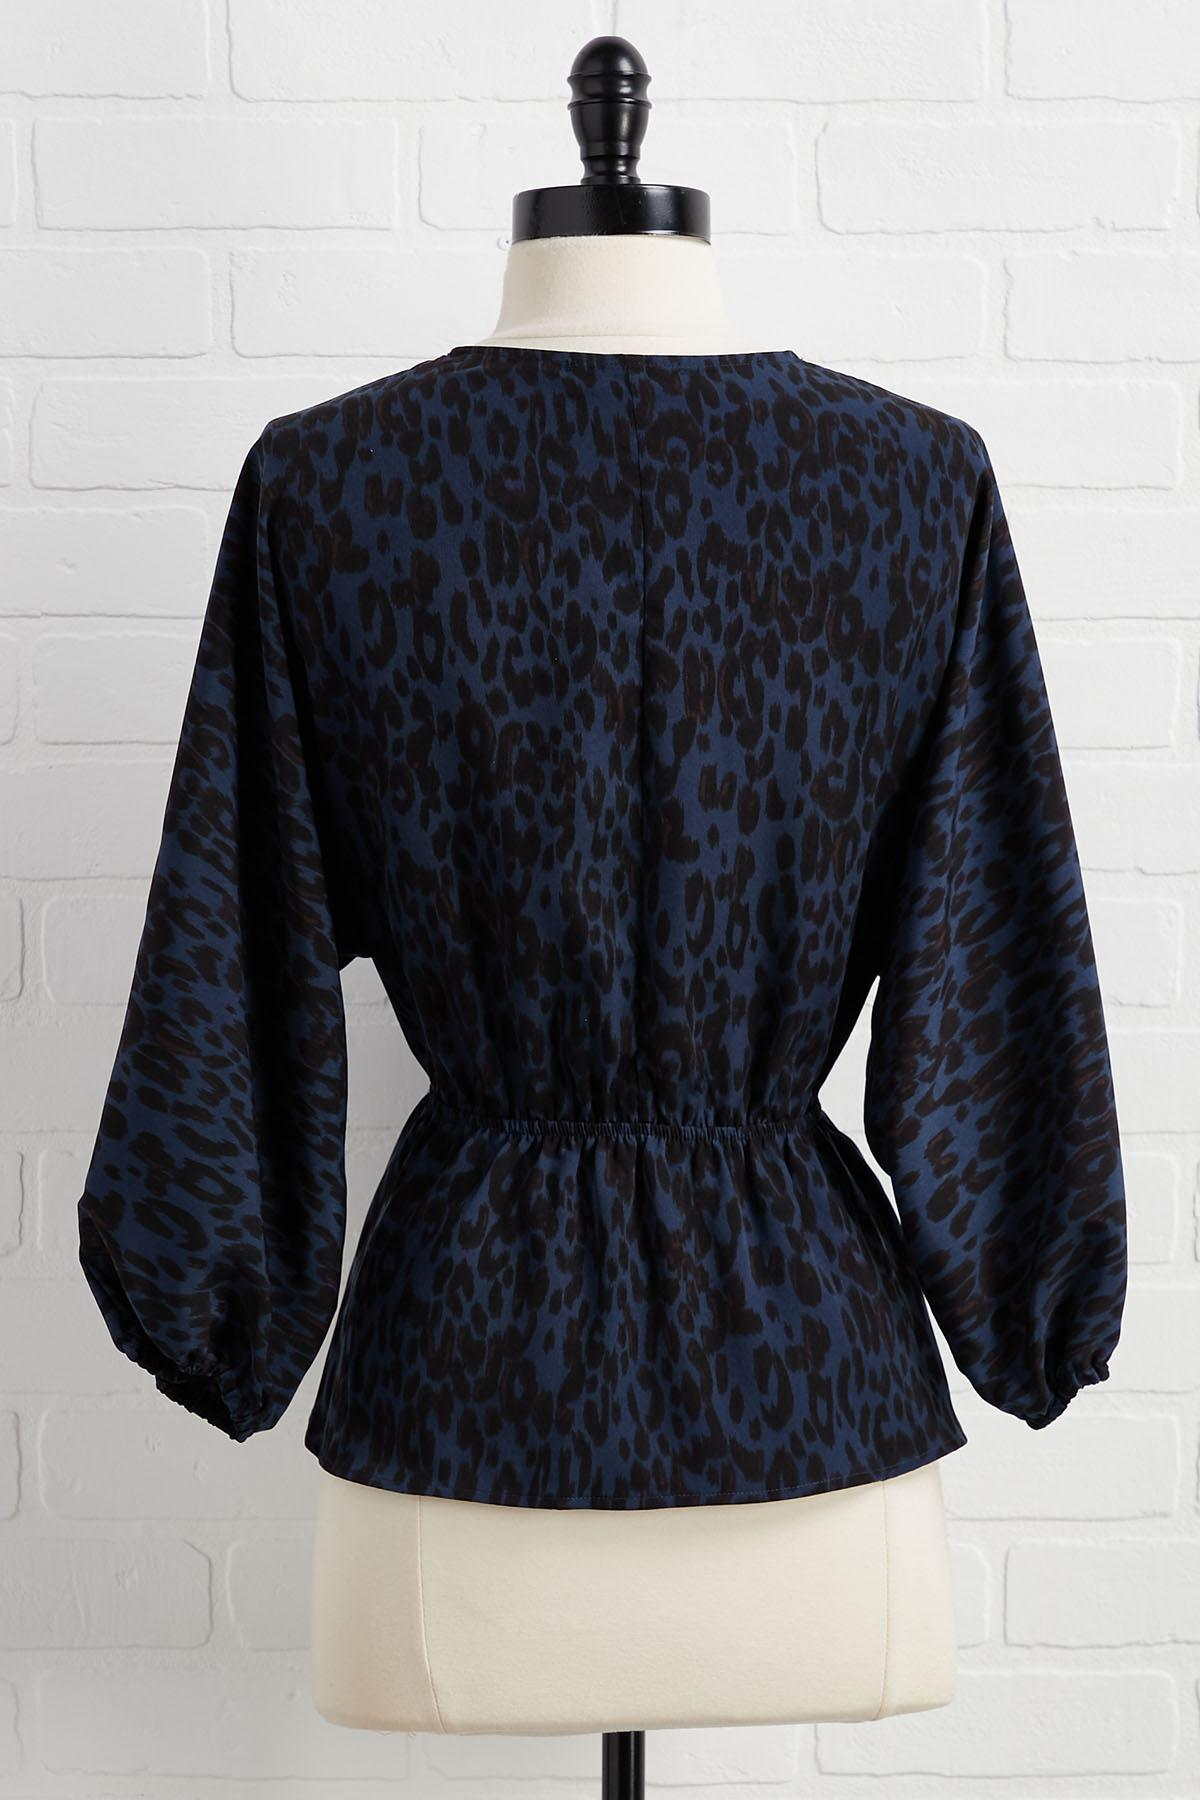 The Royal Treatment Top